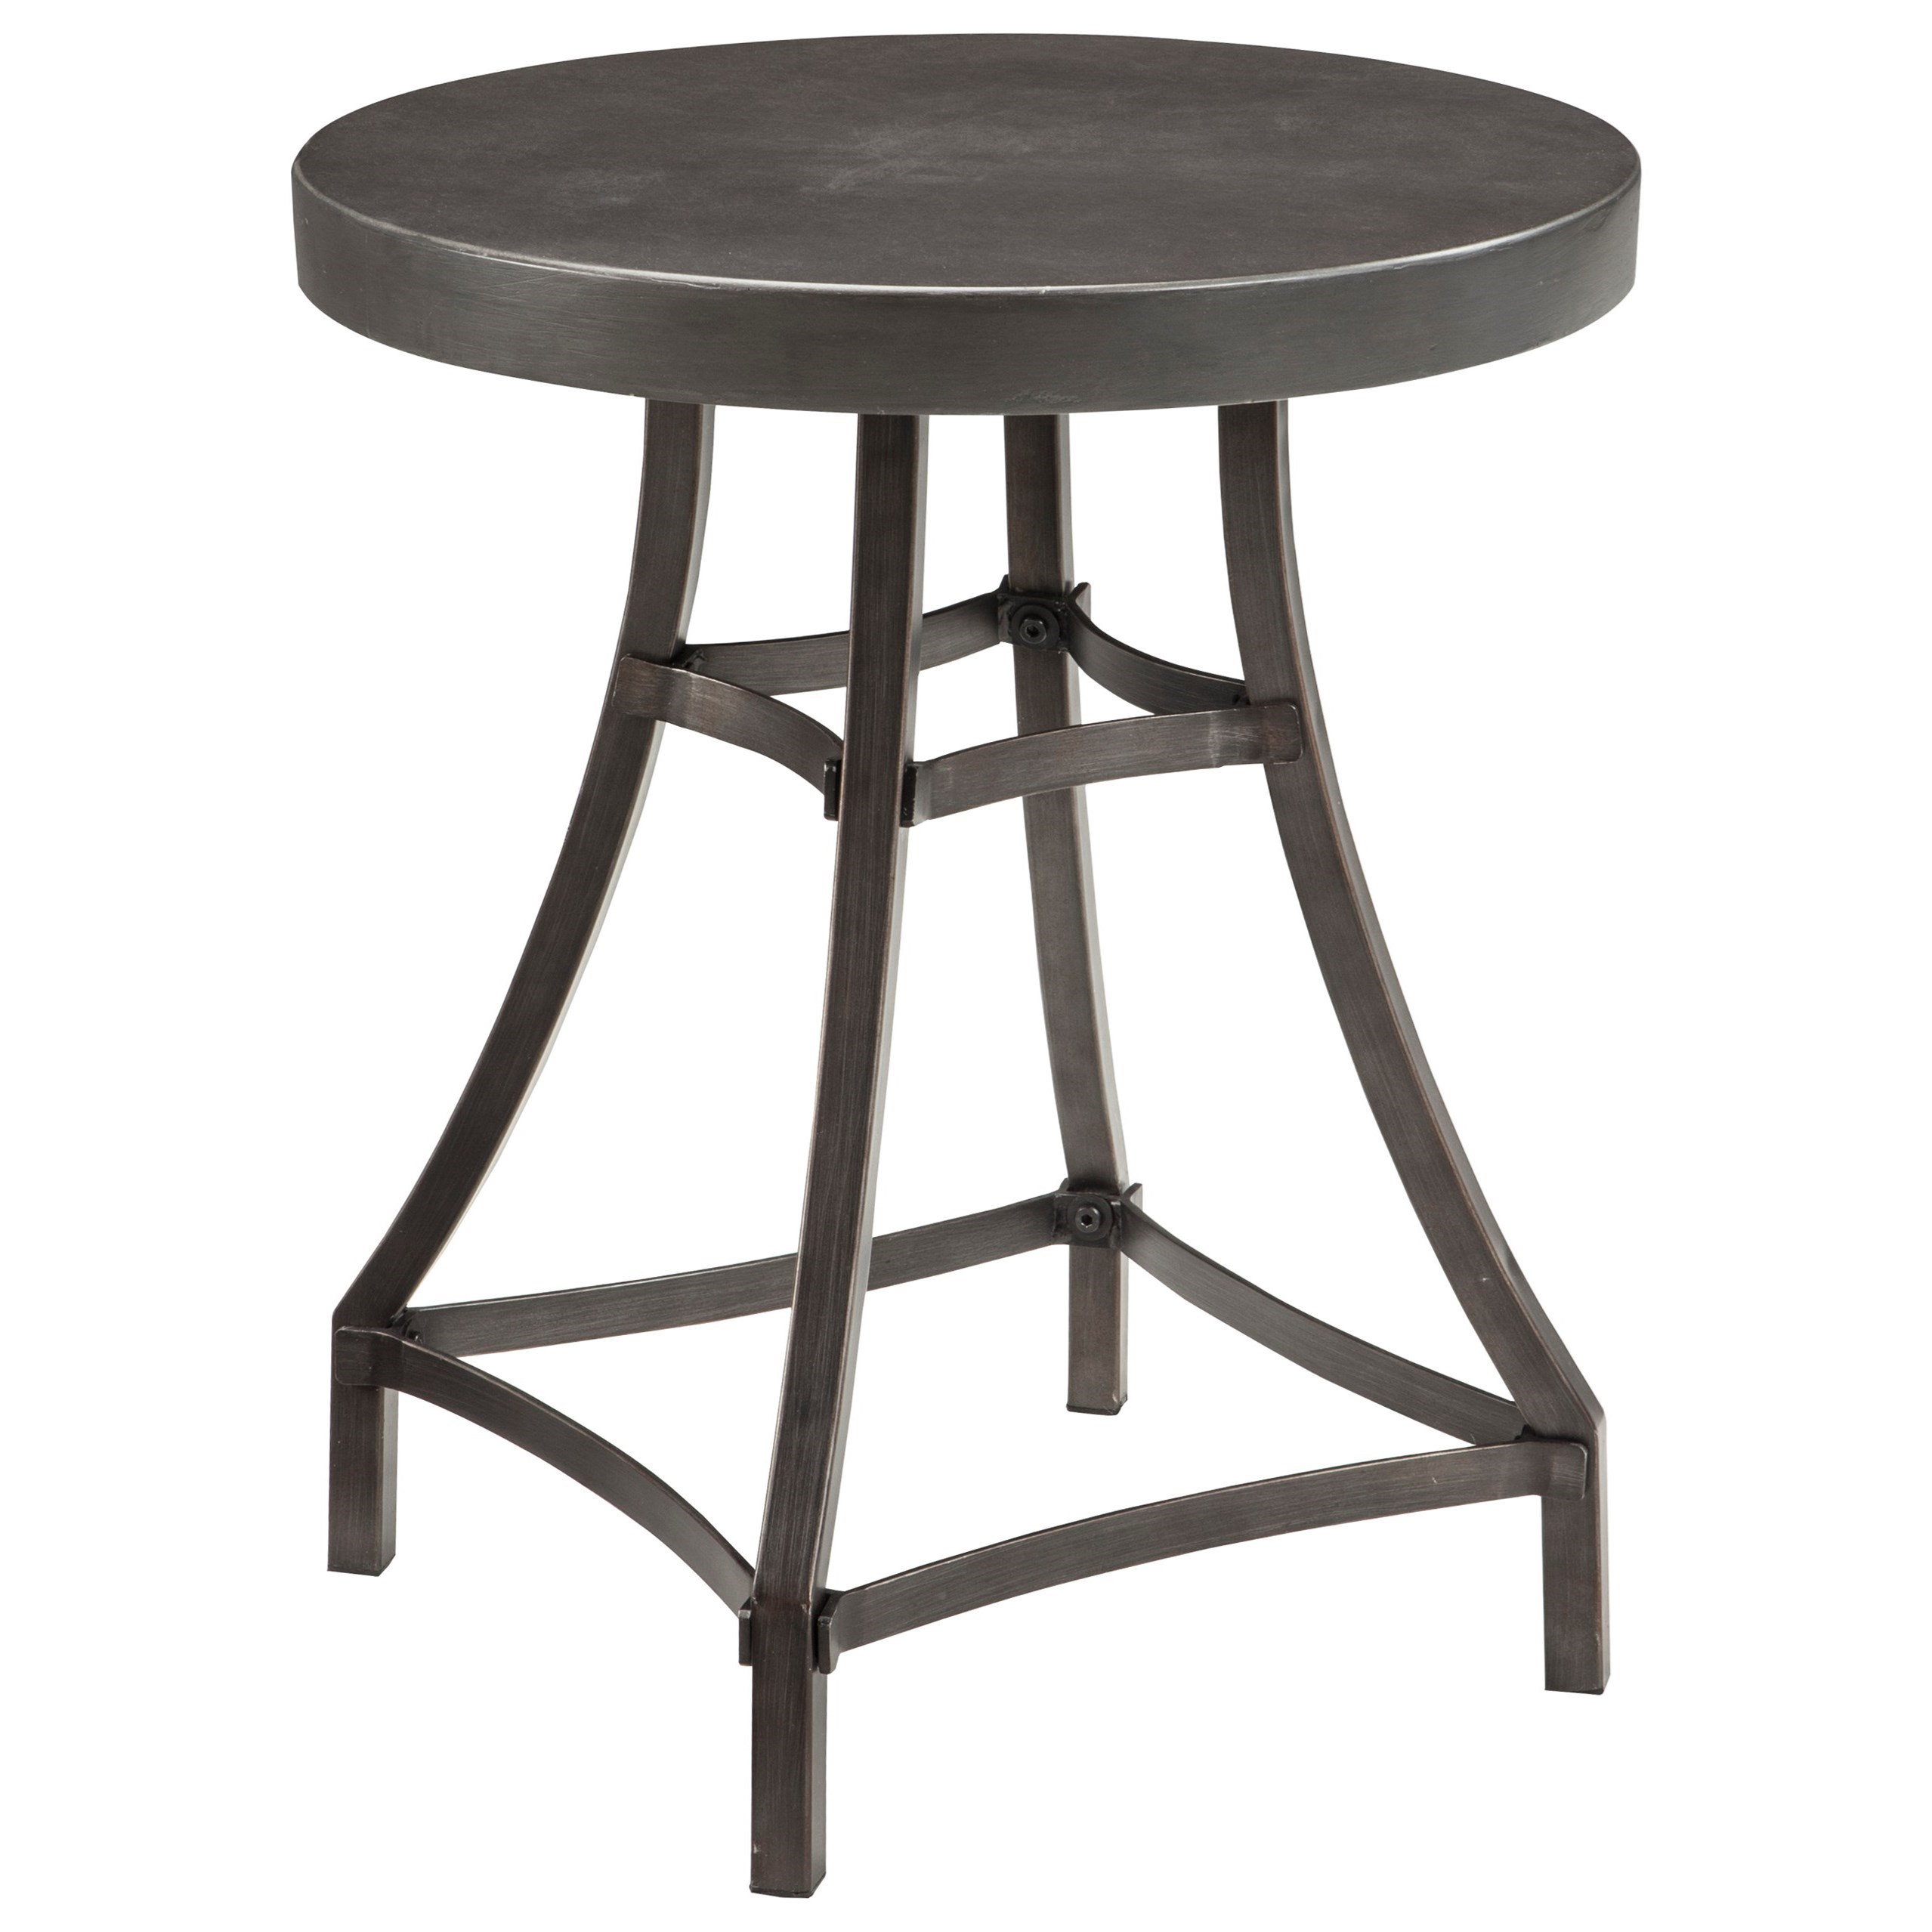 Signature Design by Ashley Starmore Round End Table - Item Number: T913-6